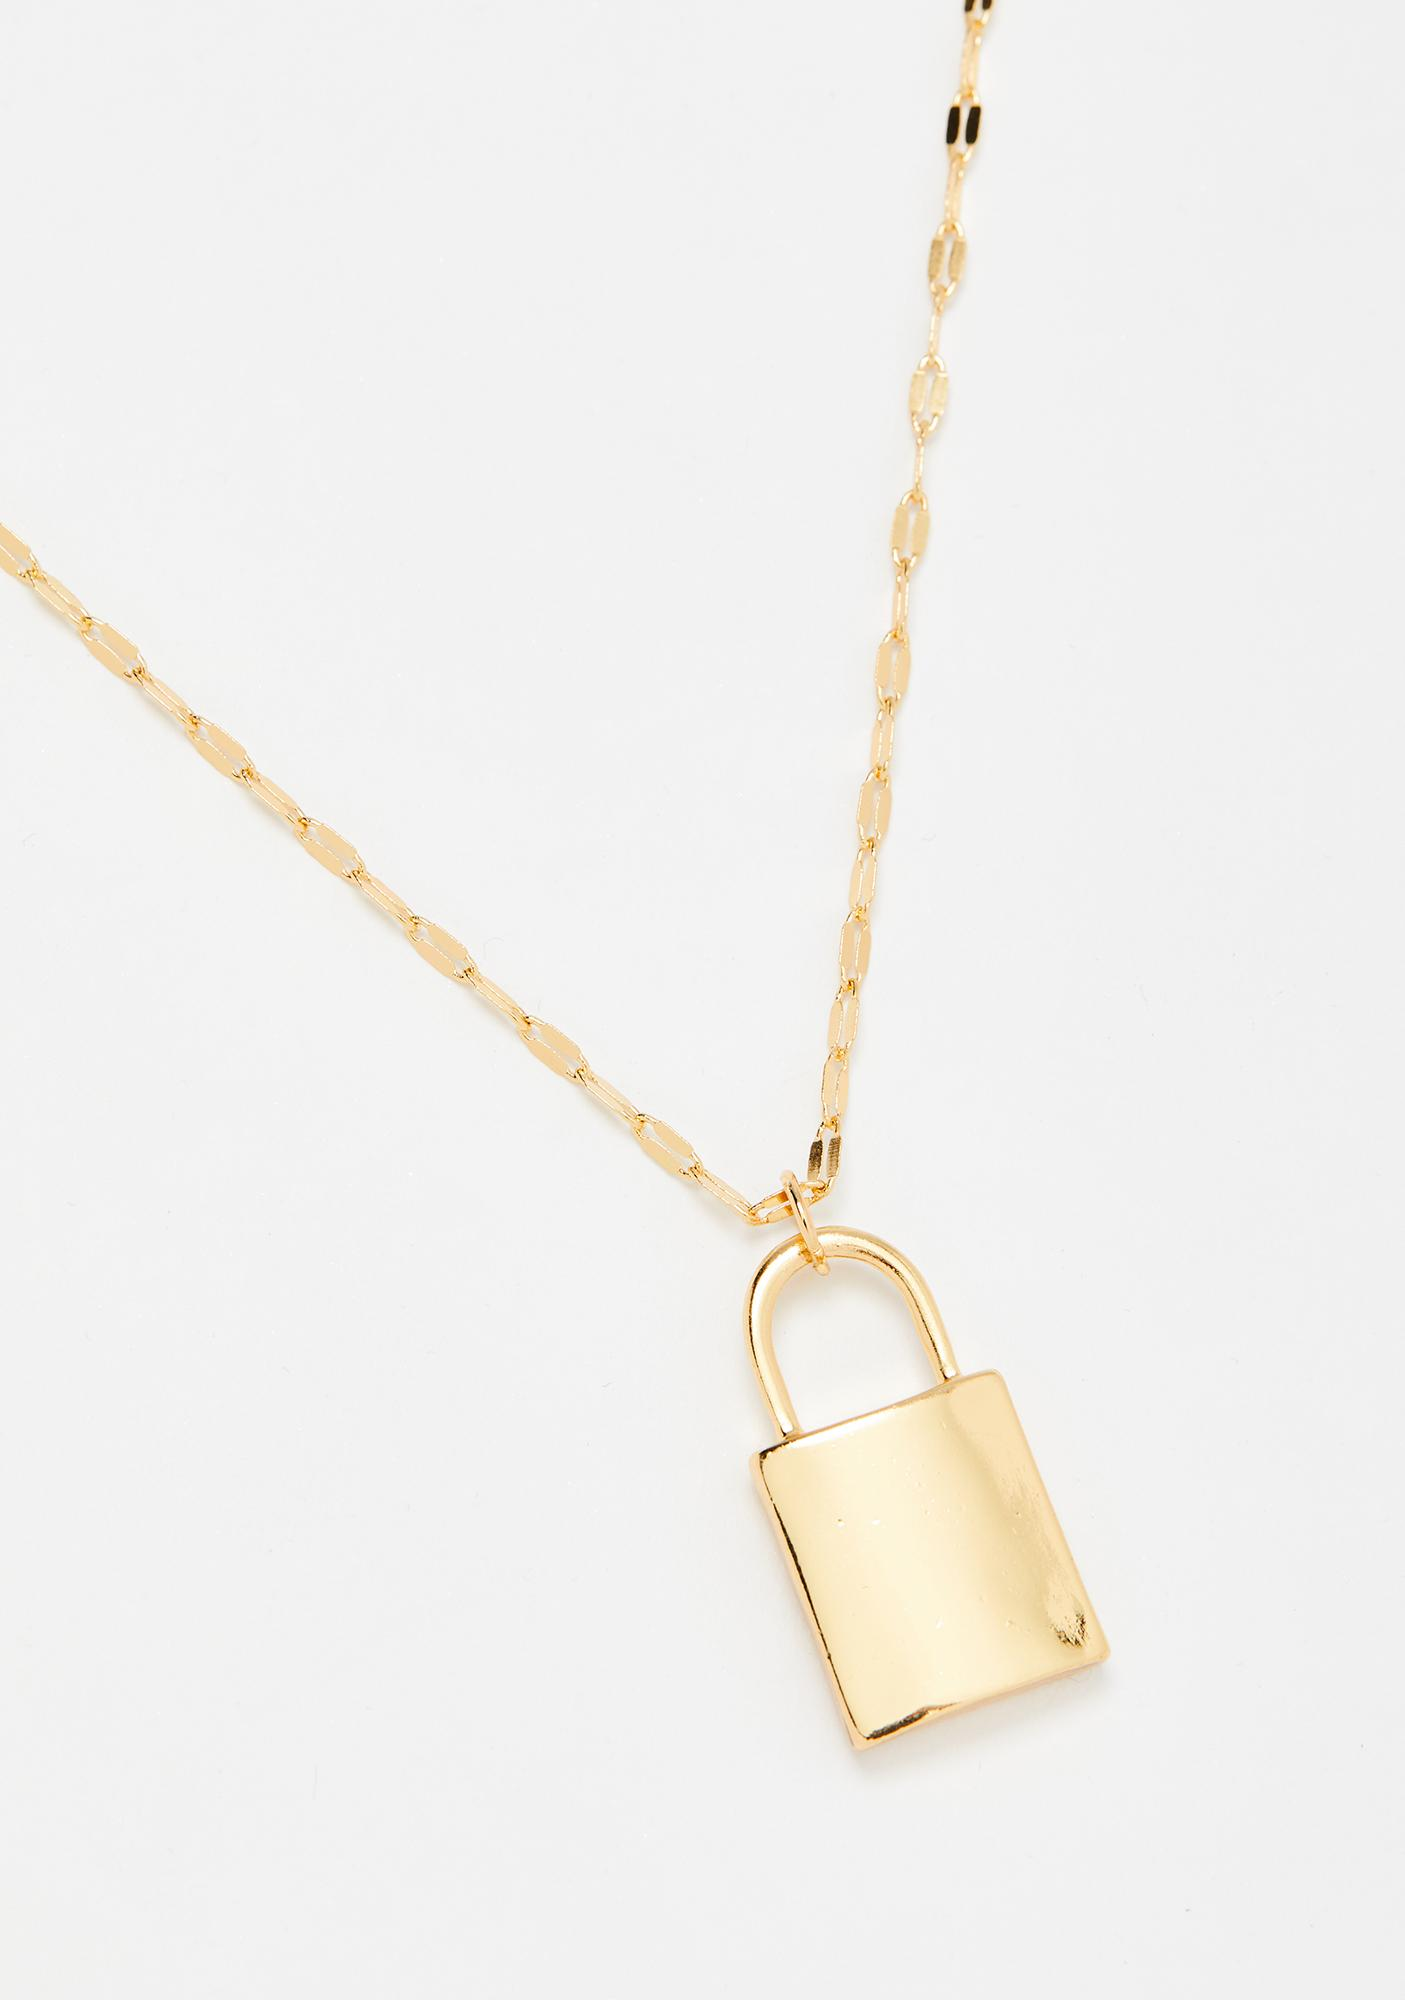 Steal Ur Heart Lock Necklace